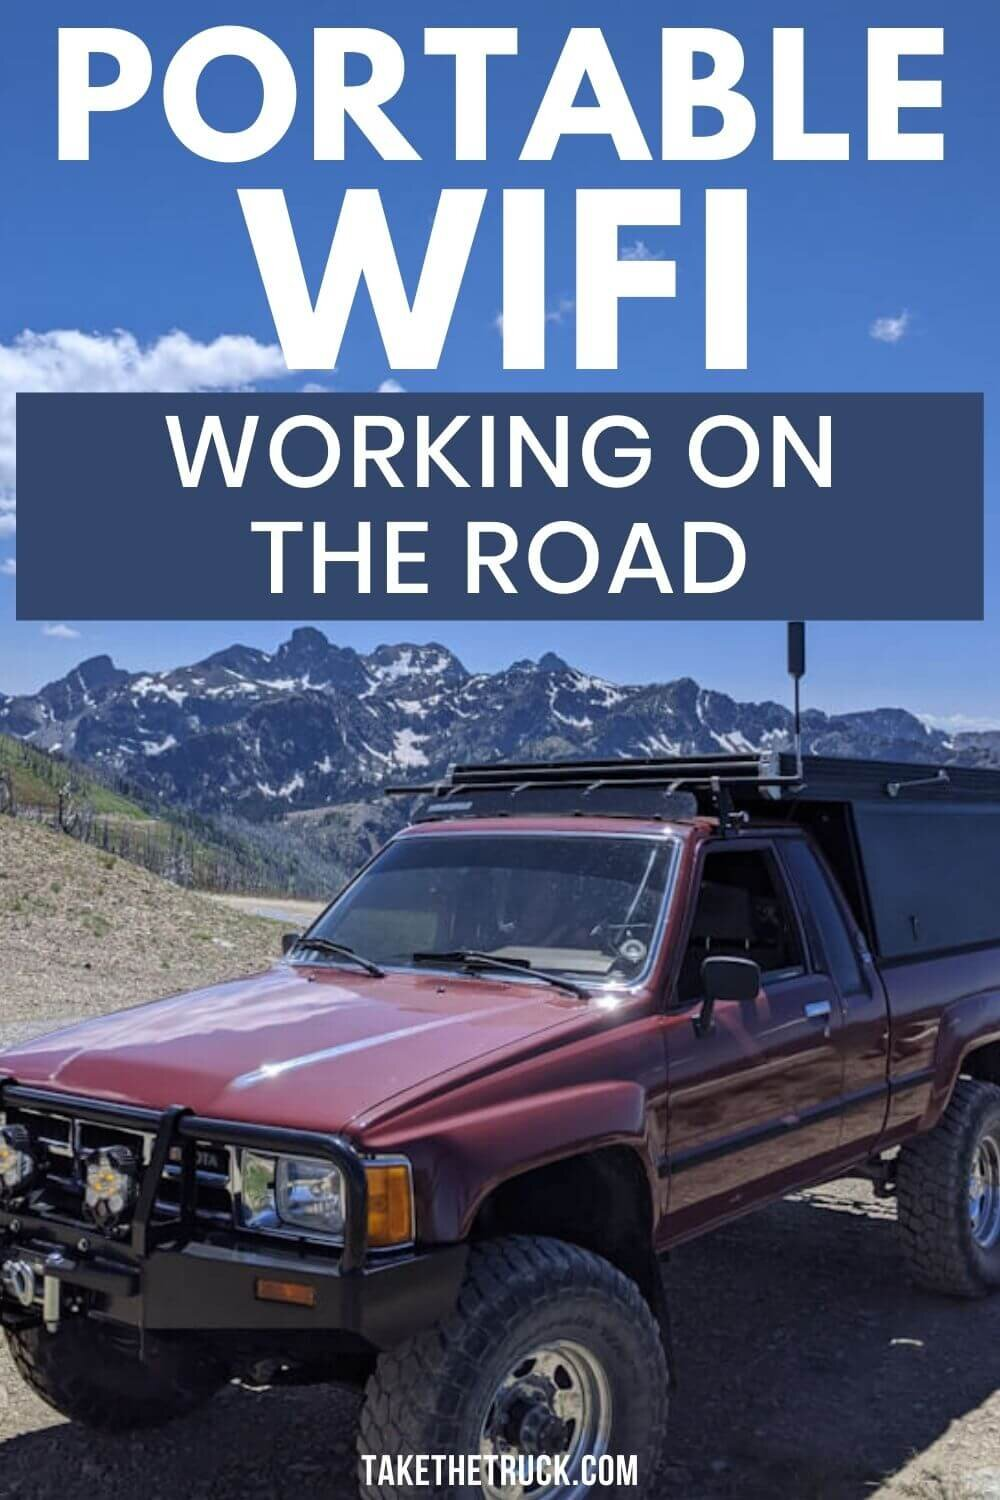 Read this if you need wifi while camping! We've finally found a portable camping wifi antenne and cell signal booster that helps provide wifi while traveling, camping, or RVing!